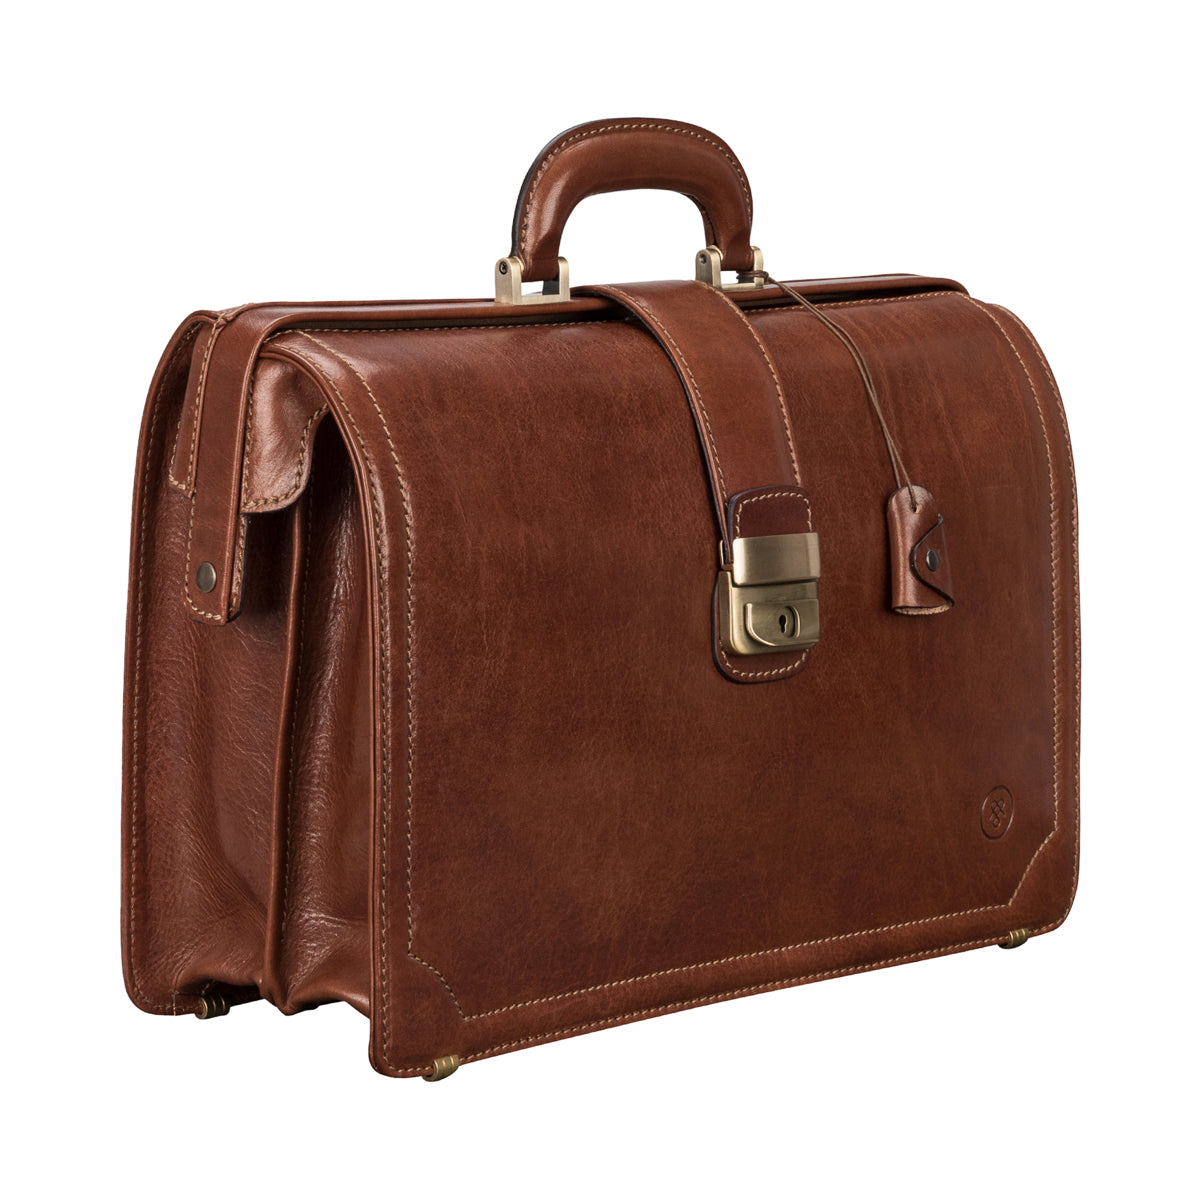 Image 2 of the 'Basilio' Chestnut Veg-Tanned Leather Executive Briefcase